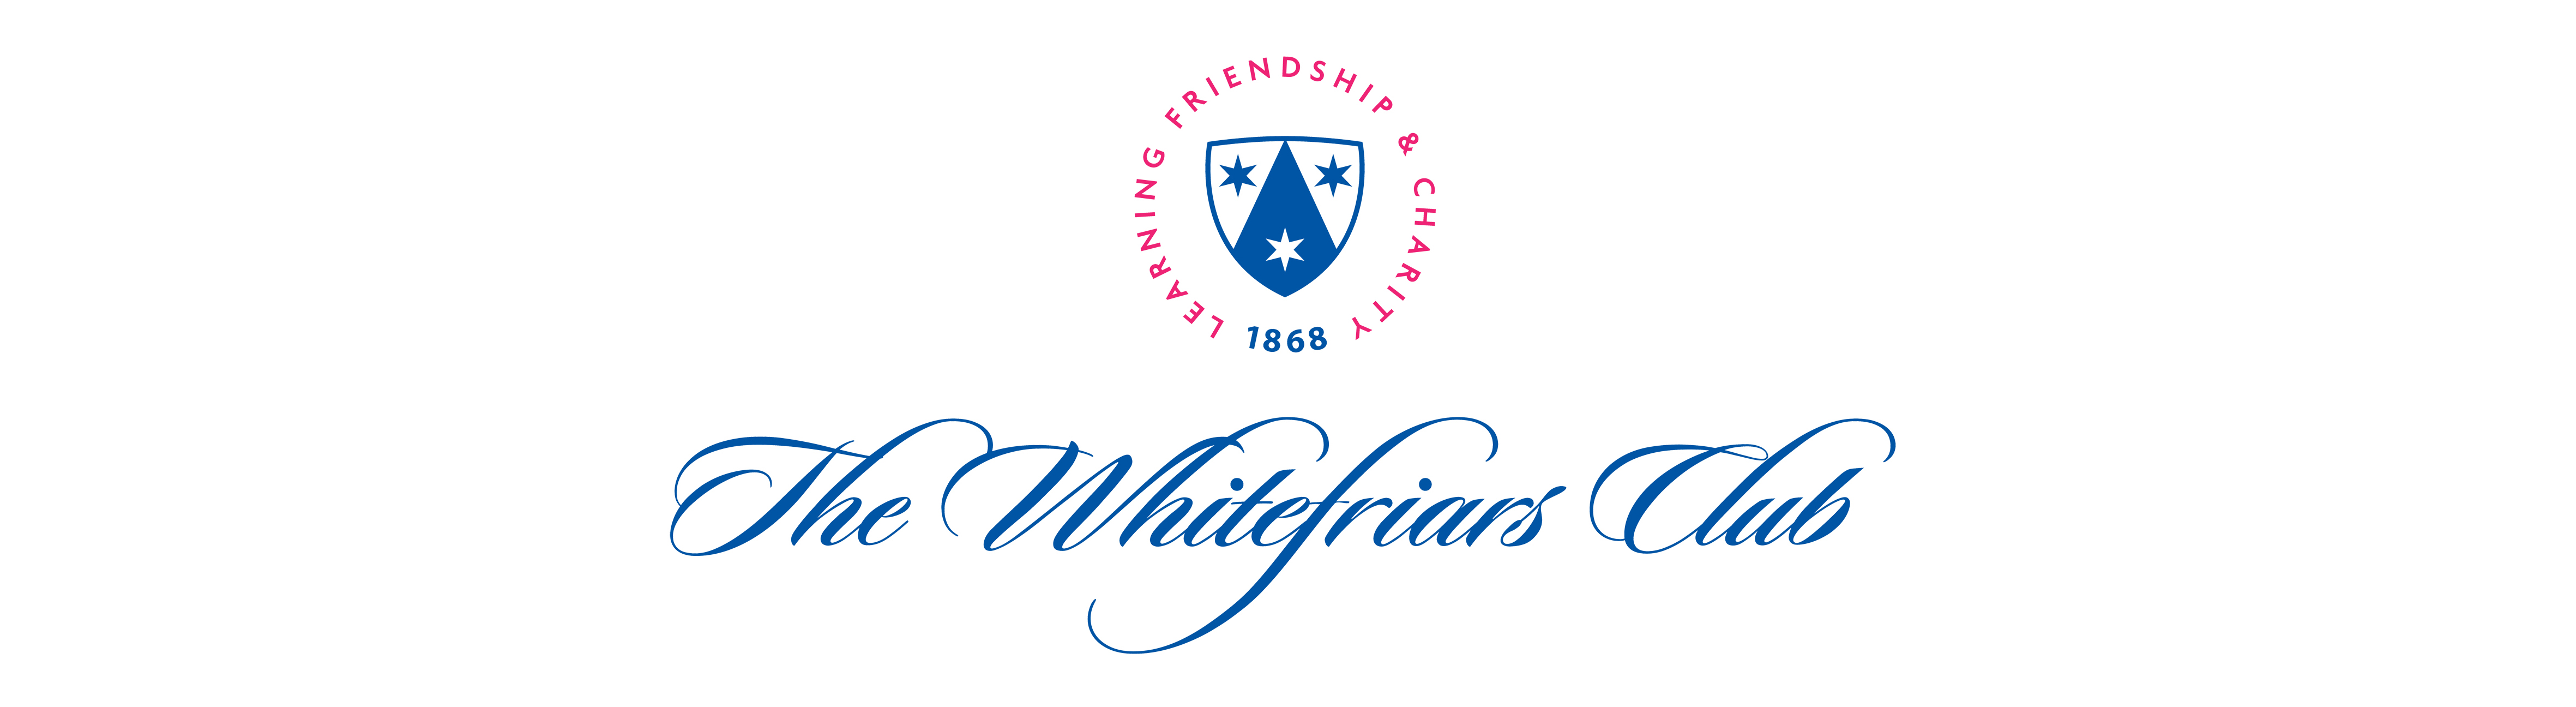 The Whitefriars Club